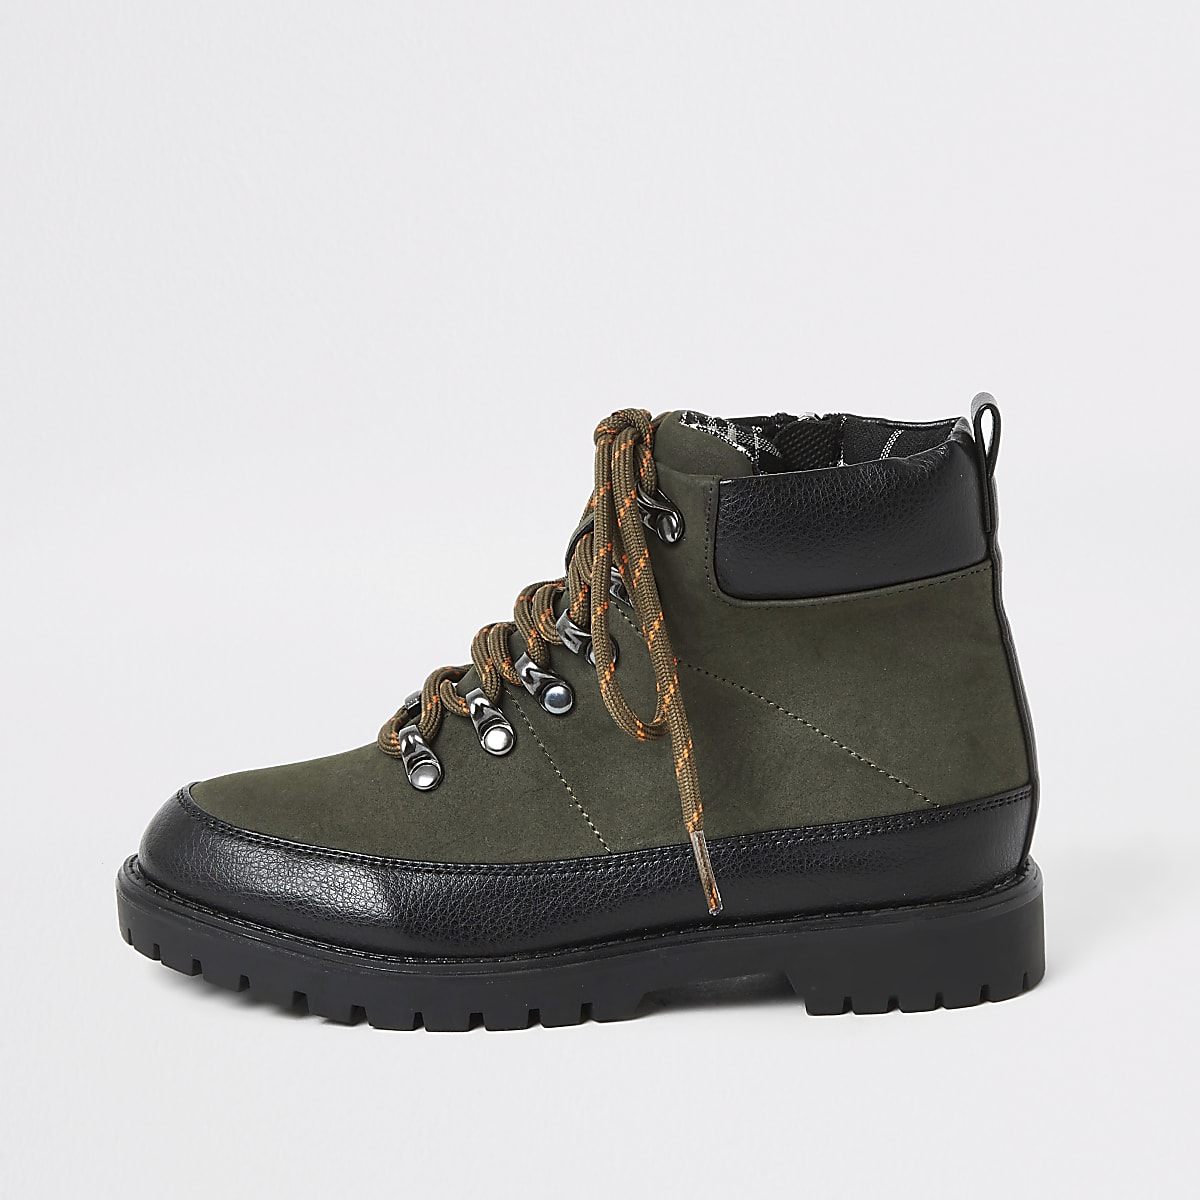 Boys khaki lace-up hiking boots